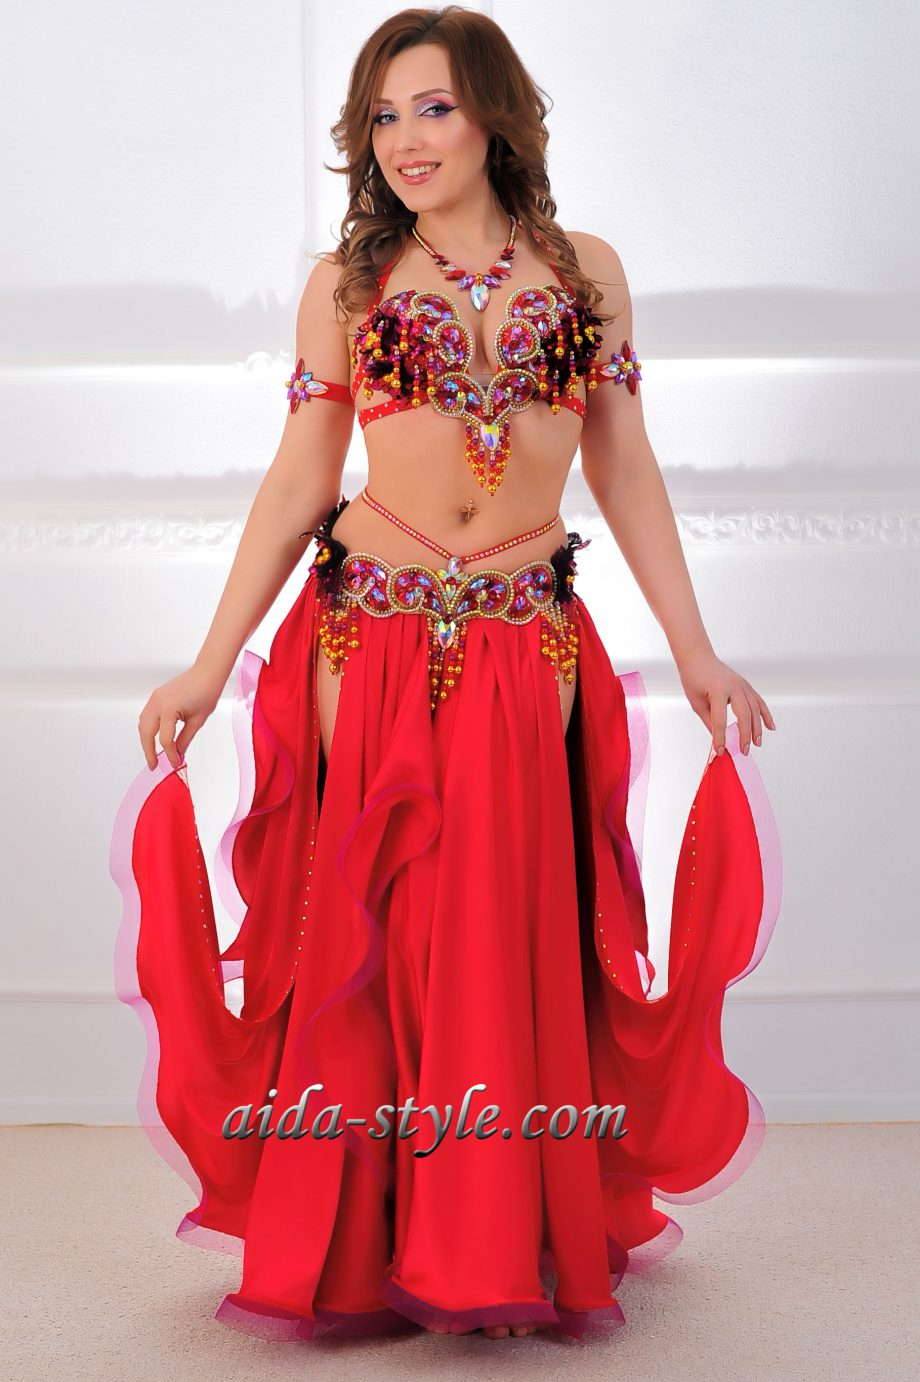 belly dancers outfits red